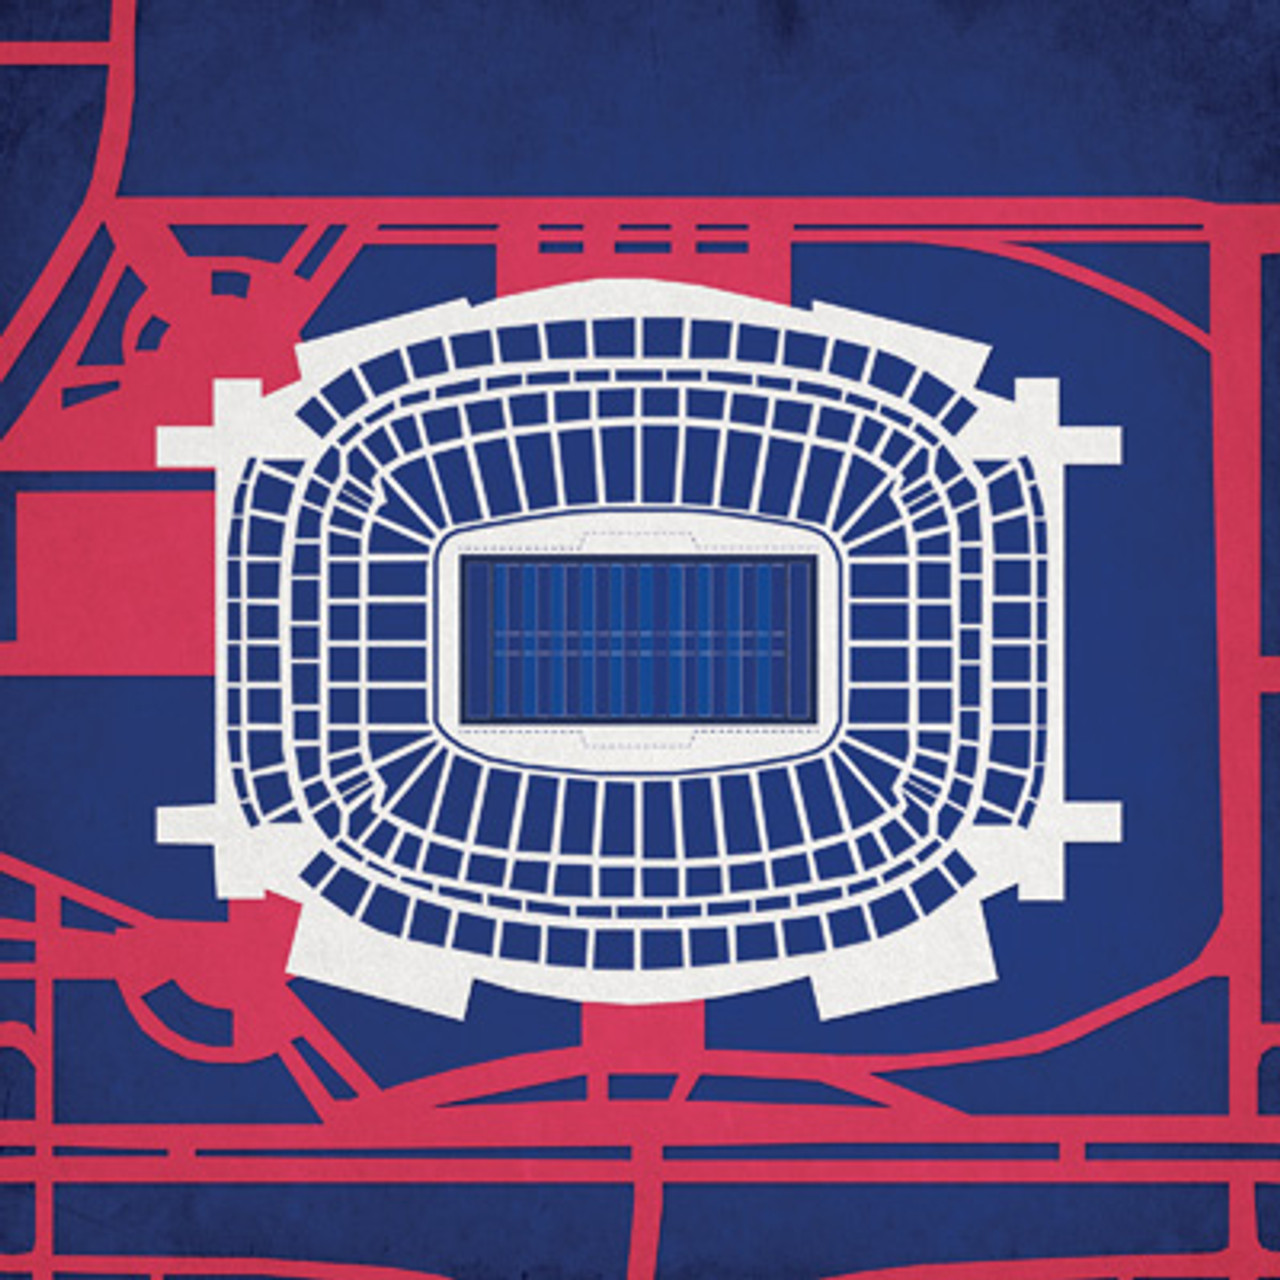 NRG Stadium - Houston Texans City Print